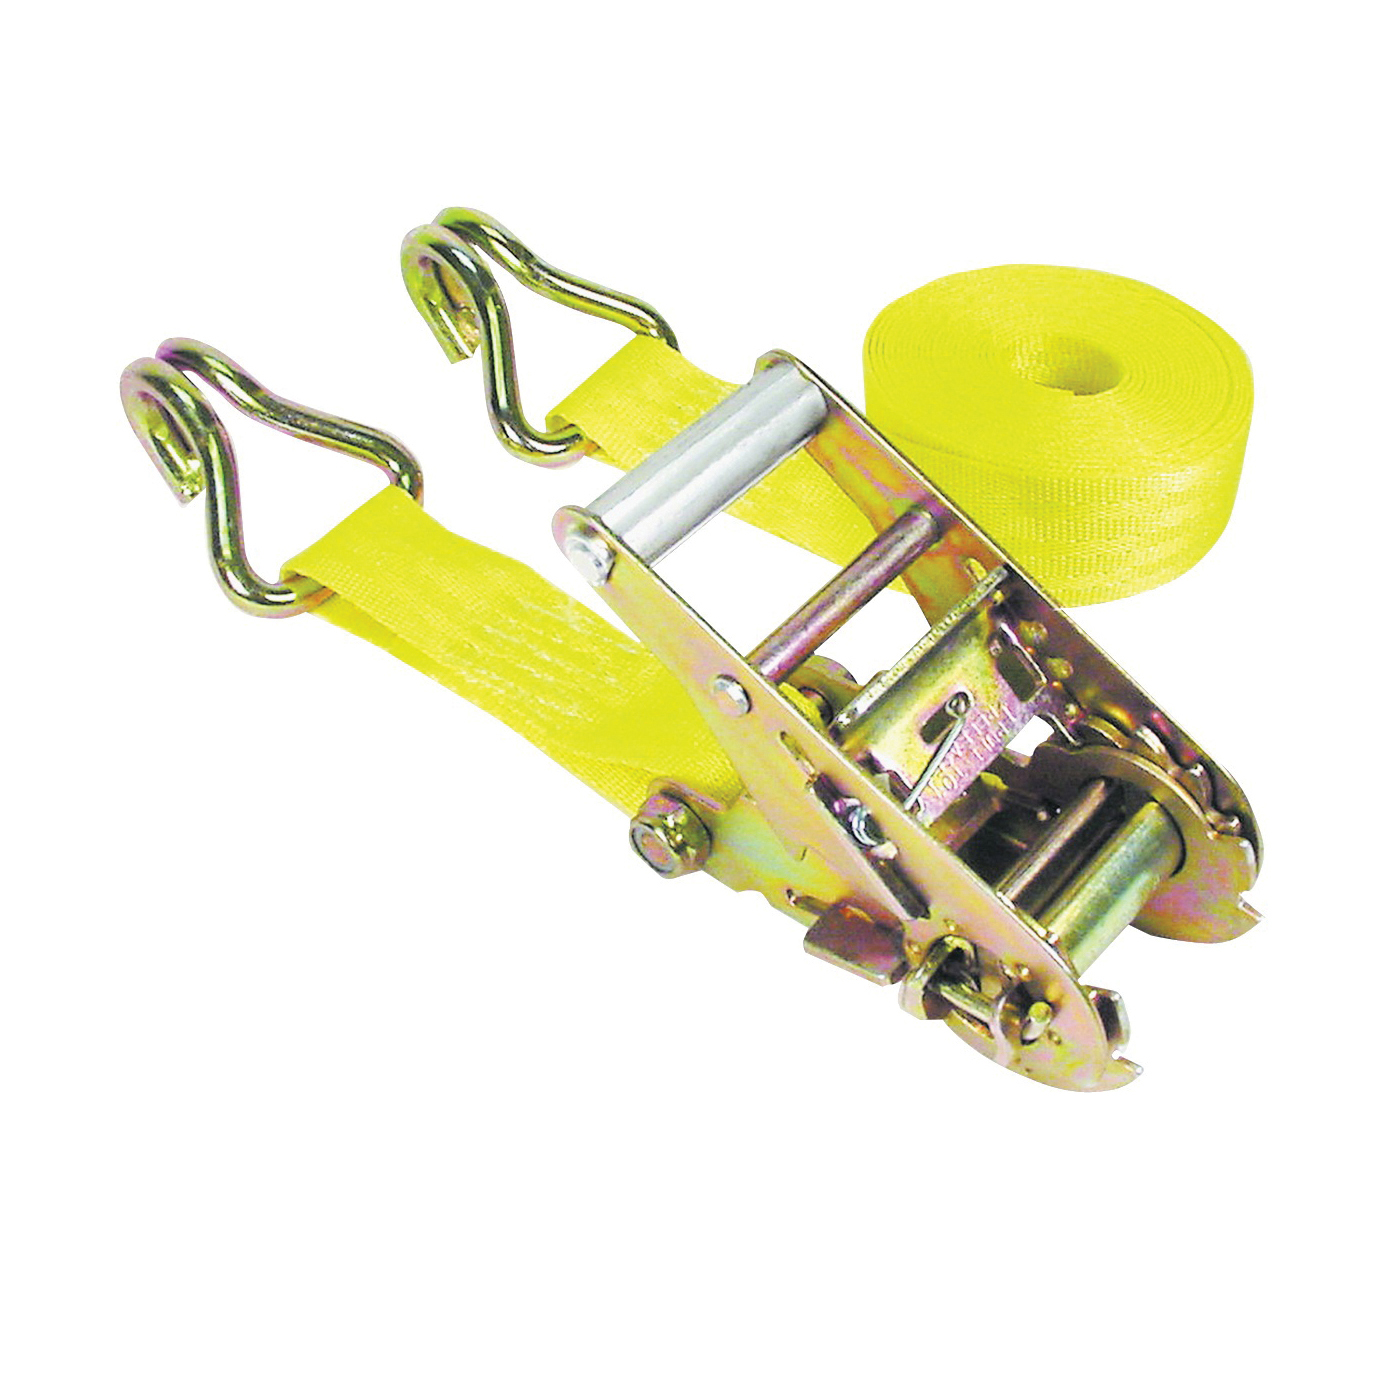 Picture of KEEPER 89519-10 Tie-Down, 1-3/4 in W, 15 ft L, Yellow, 1666 lb, J-Hook End Fitting, Steel End Fitting